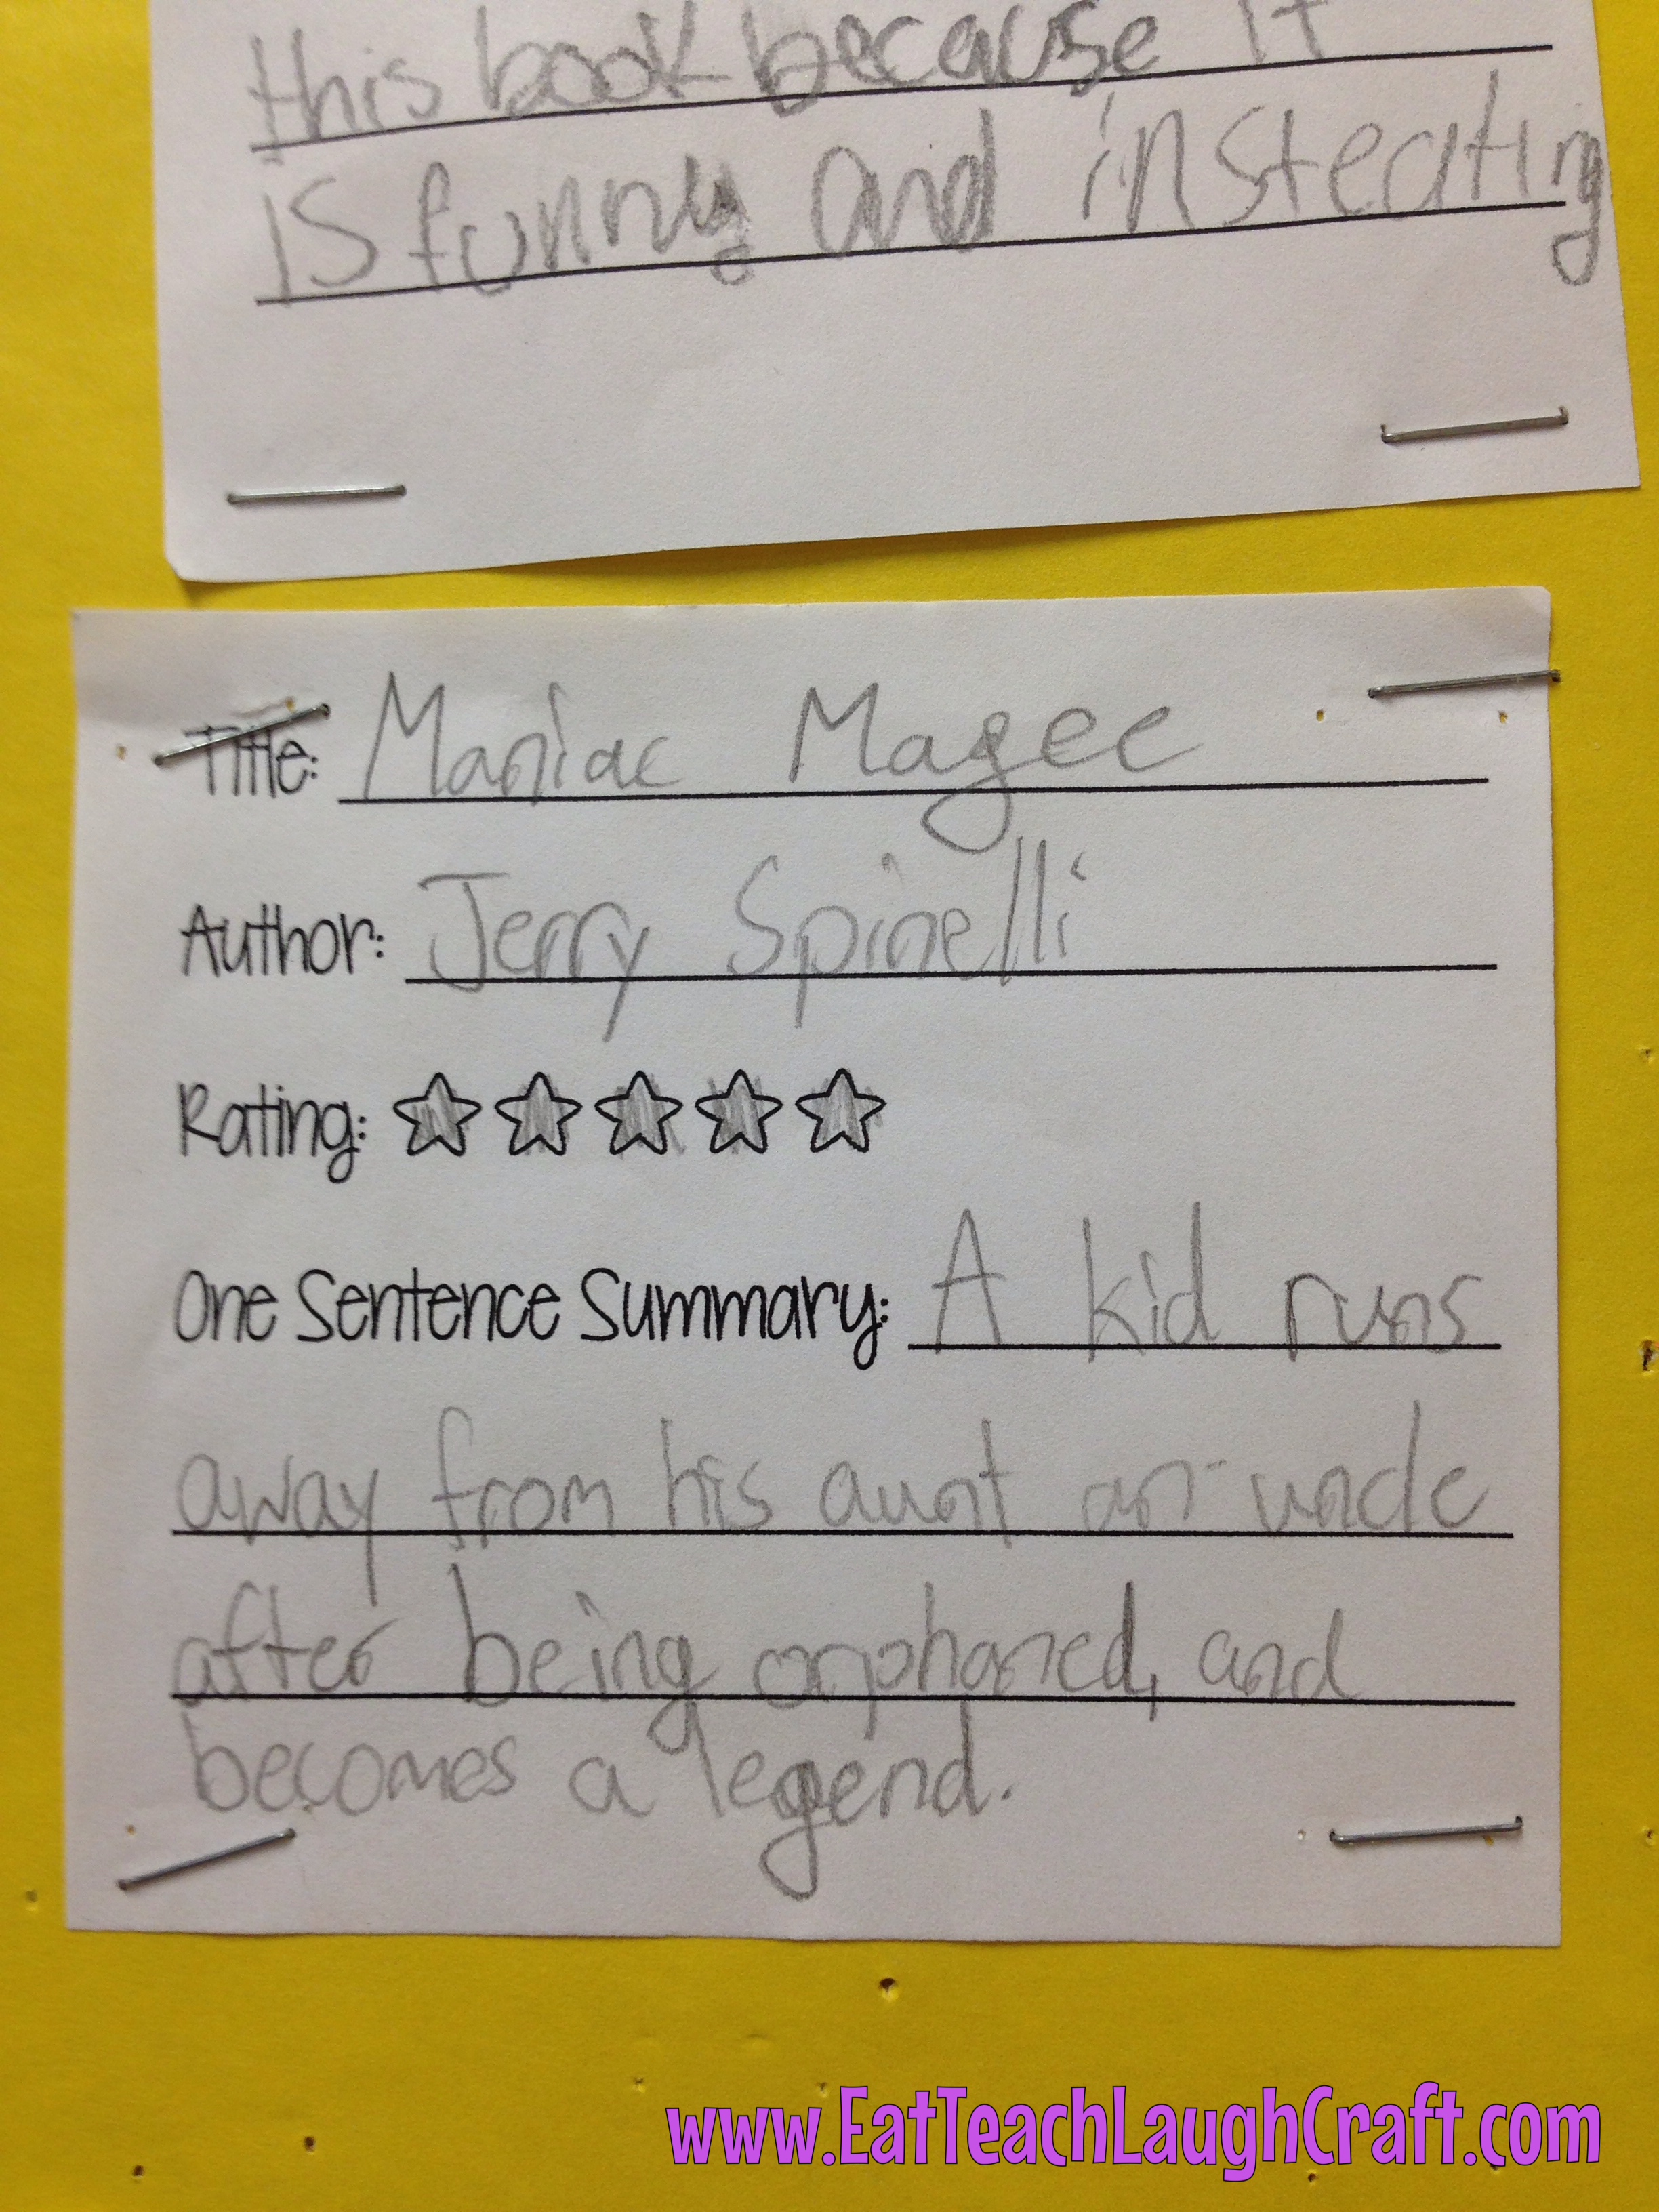 book report maniac magee Immediately download the maniac magee summary, chapter-by-chapter analysis, book notes, essays, quotes, character descriptions, lesson plans, and more - everything you need for studying or teaching maniac magee.